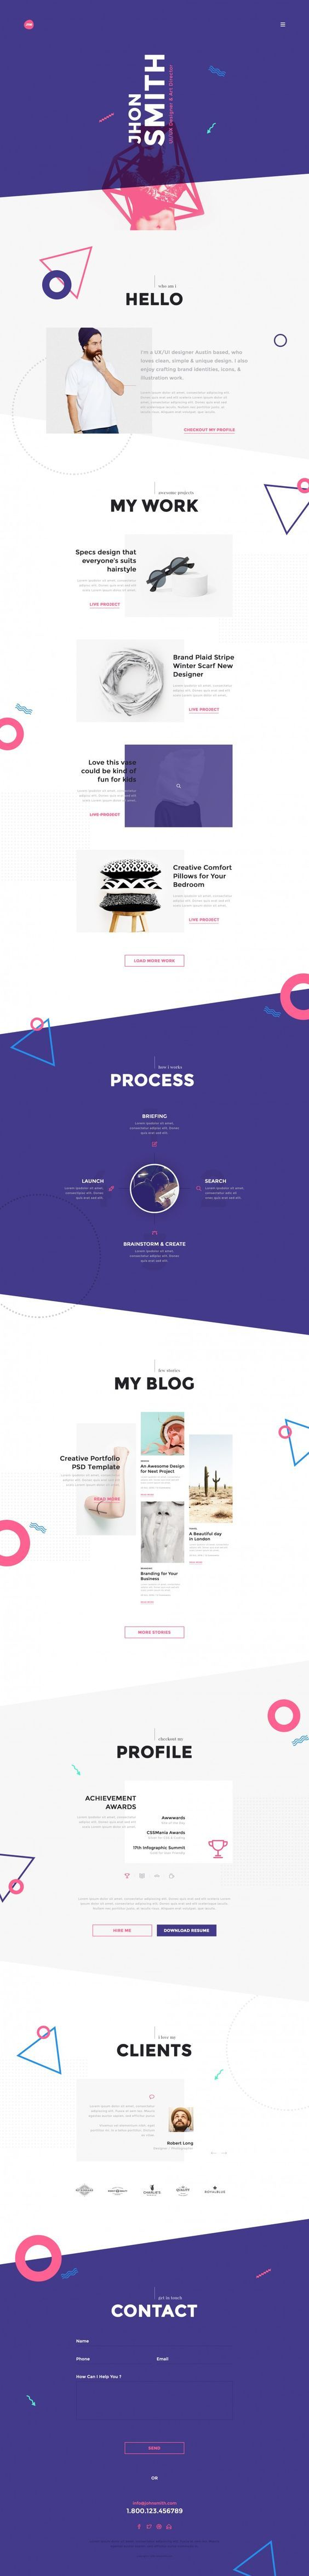 Me Creative Portfolio Web Design (Designer Unknown)